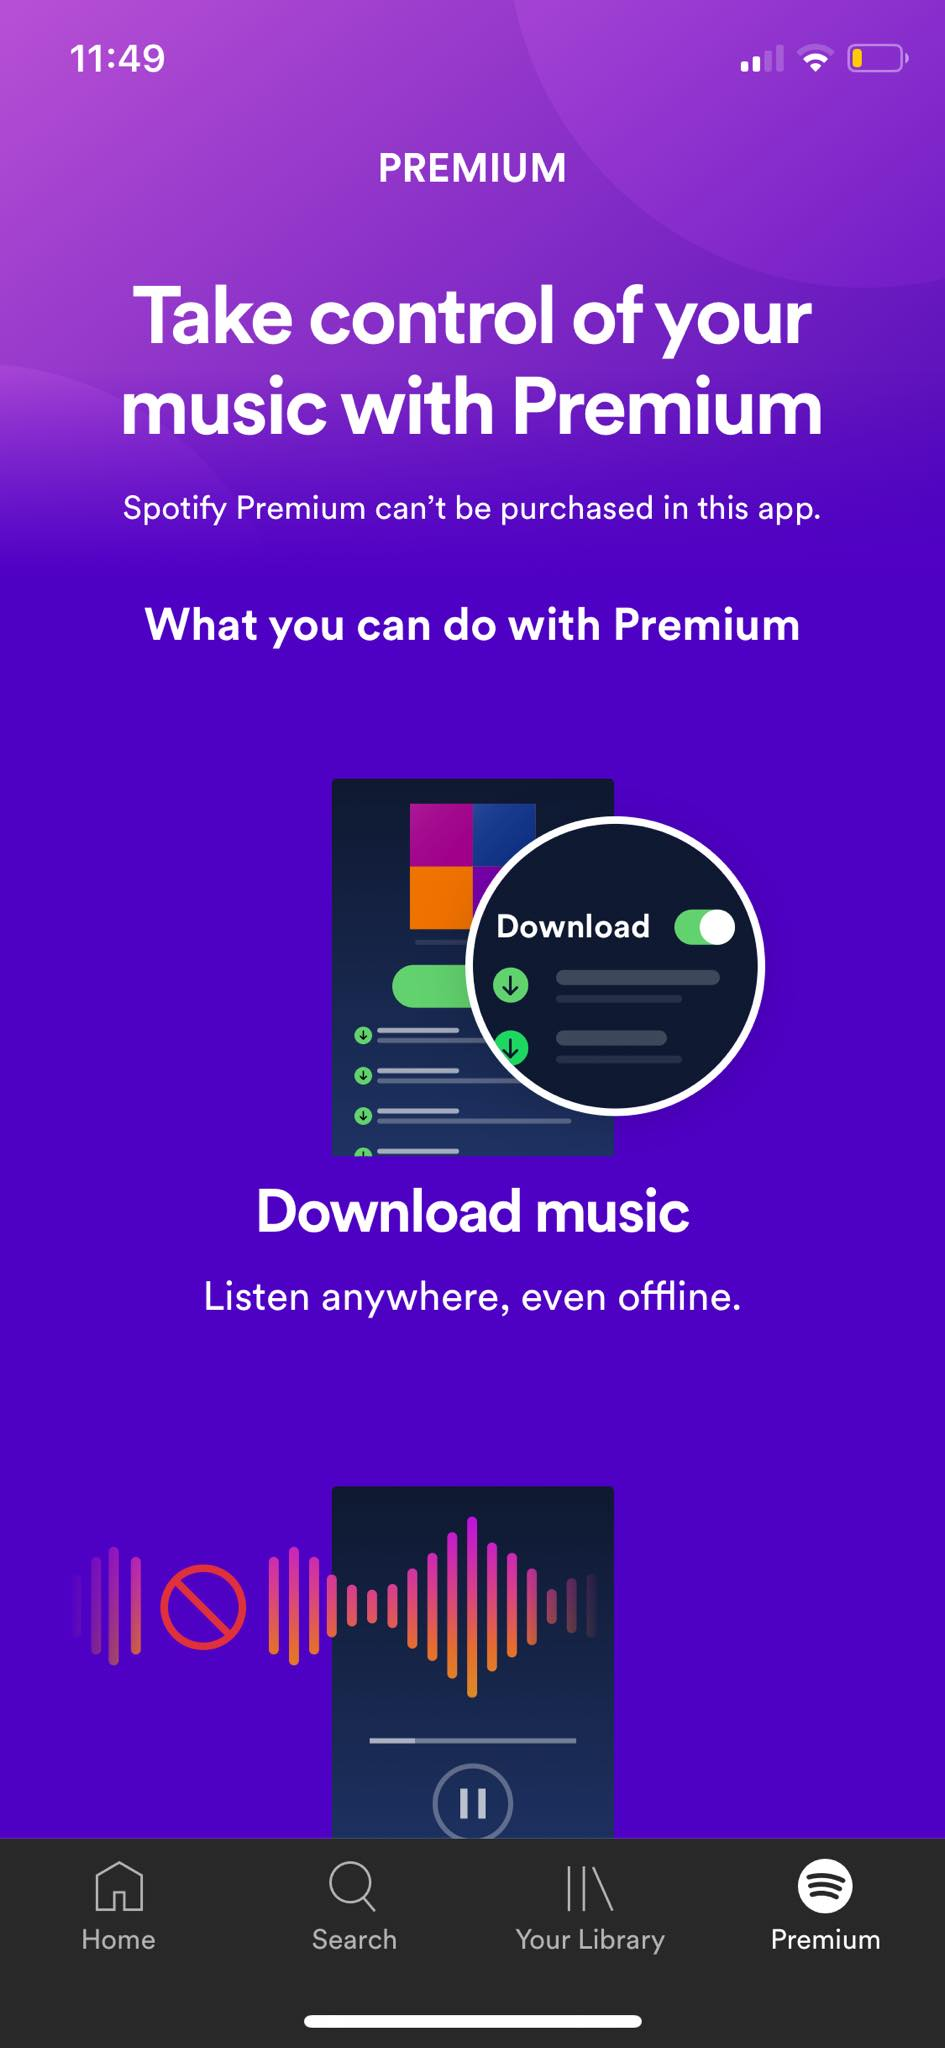 Premium on iOS by Spotify